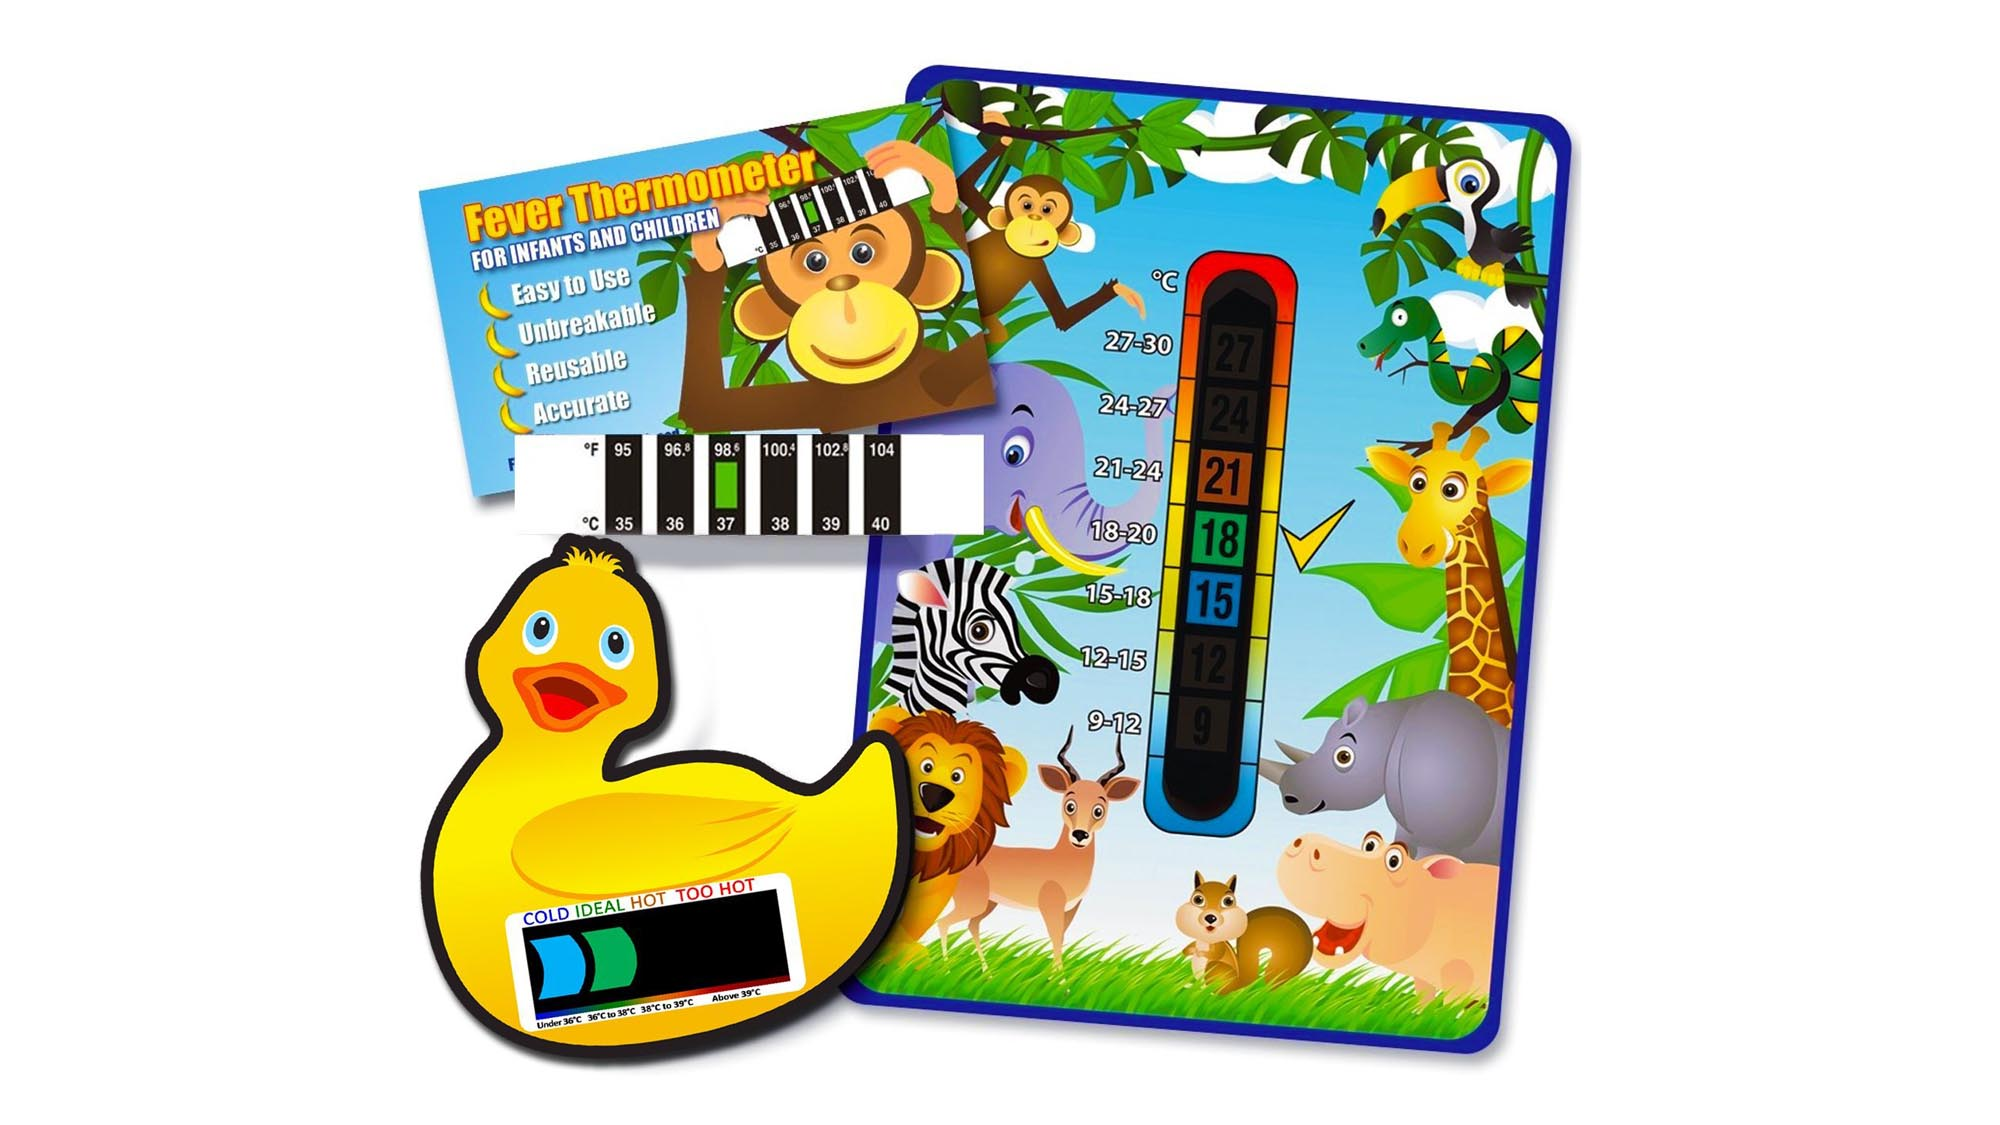 Best Baby Thermometer Six Of The Best Baby Bath And Room